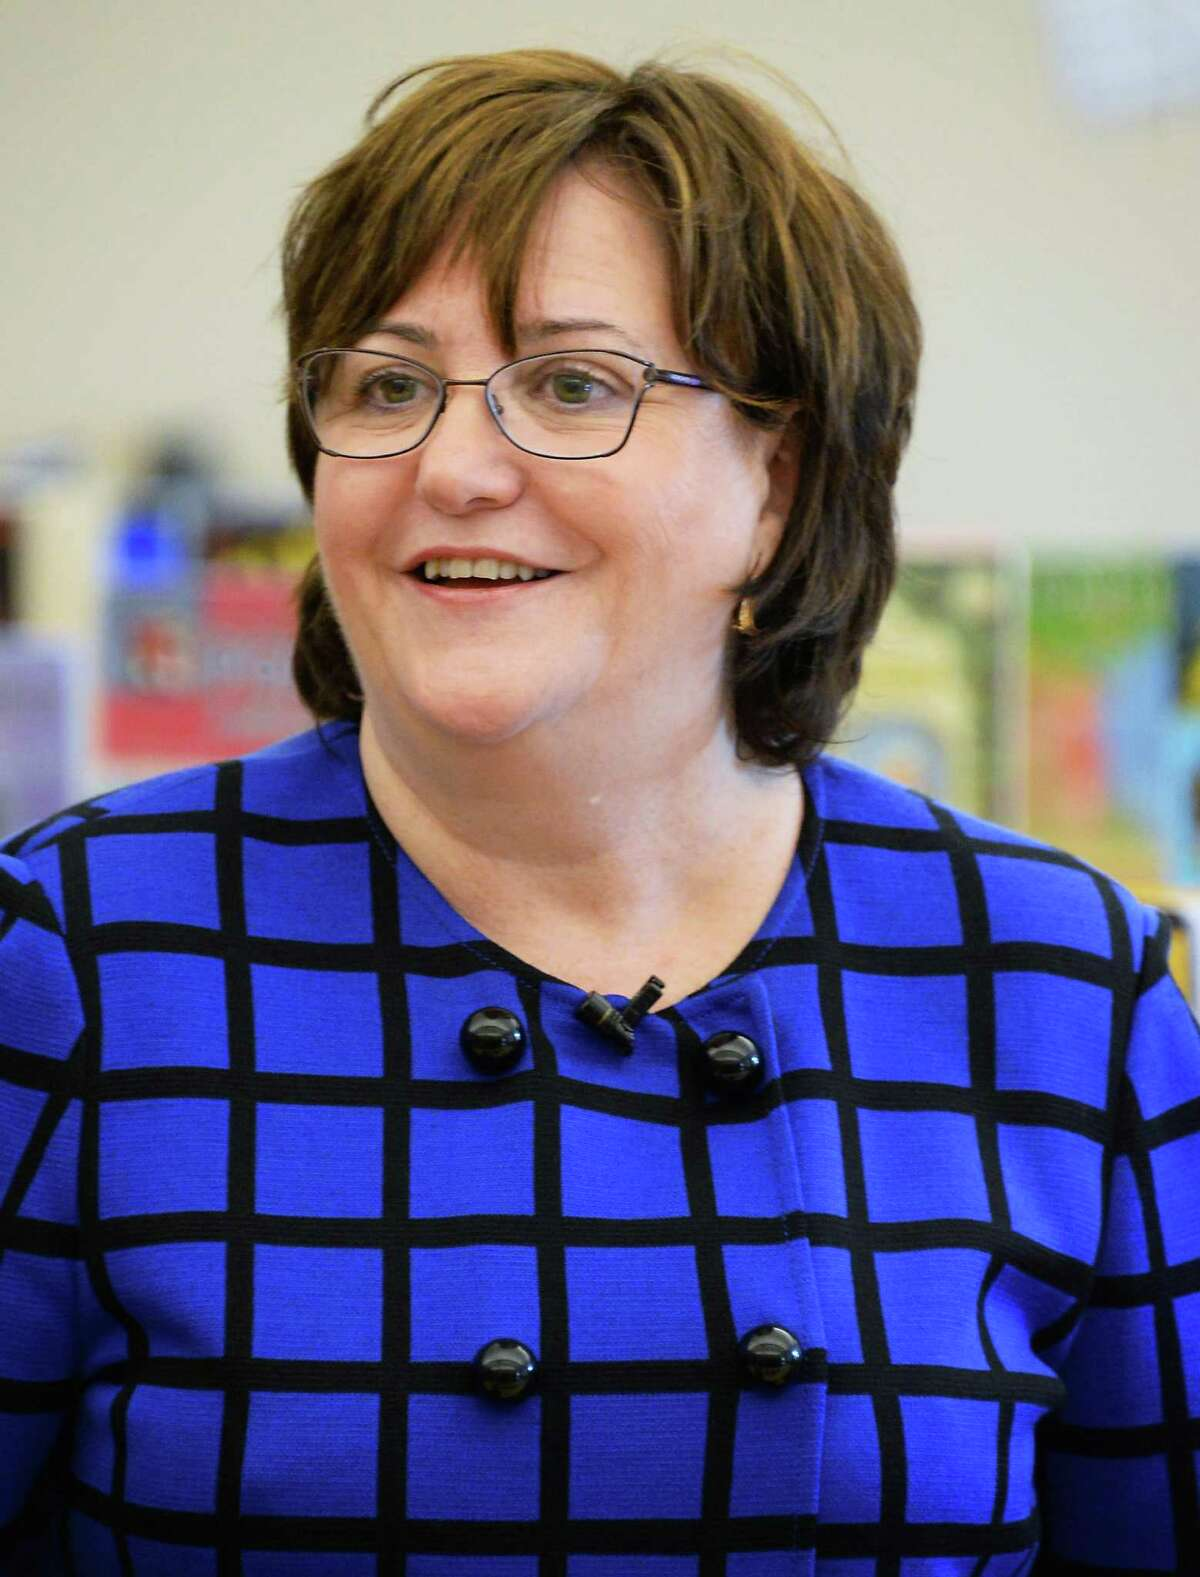 Newly appointed NYS Education Commissioner Maryellen Elia during a visit a Pine Hills Elementary School Wednesday May 27, 2015 in Albany, NY. (John Carl D'Annibale / Times Union archive)